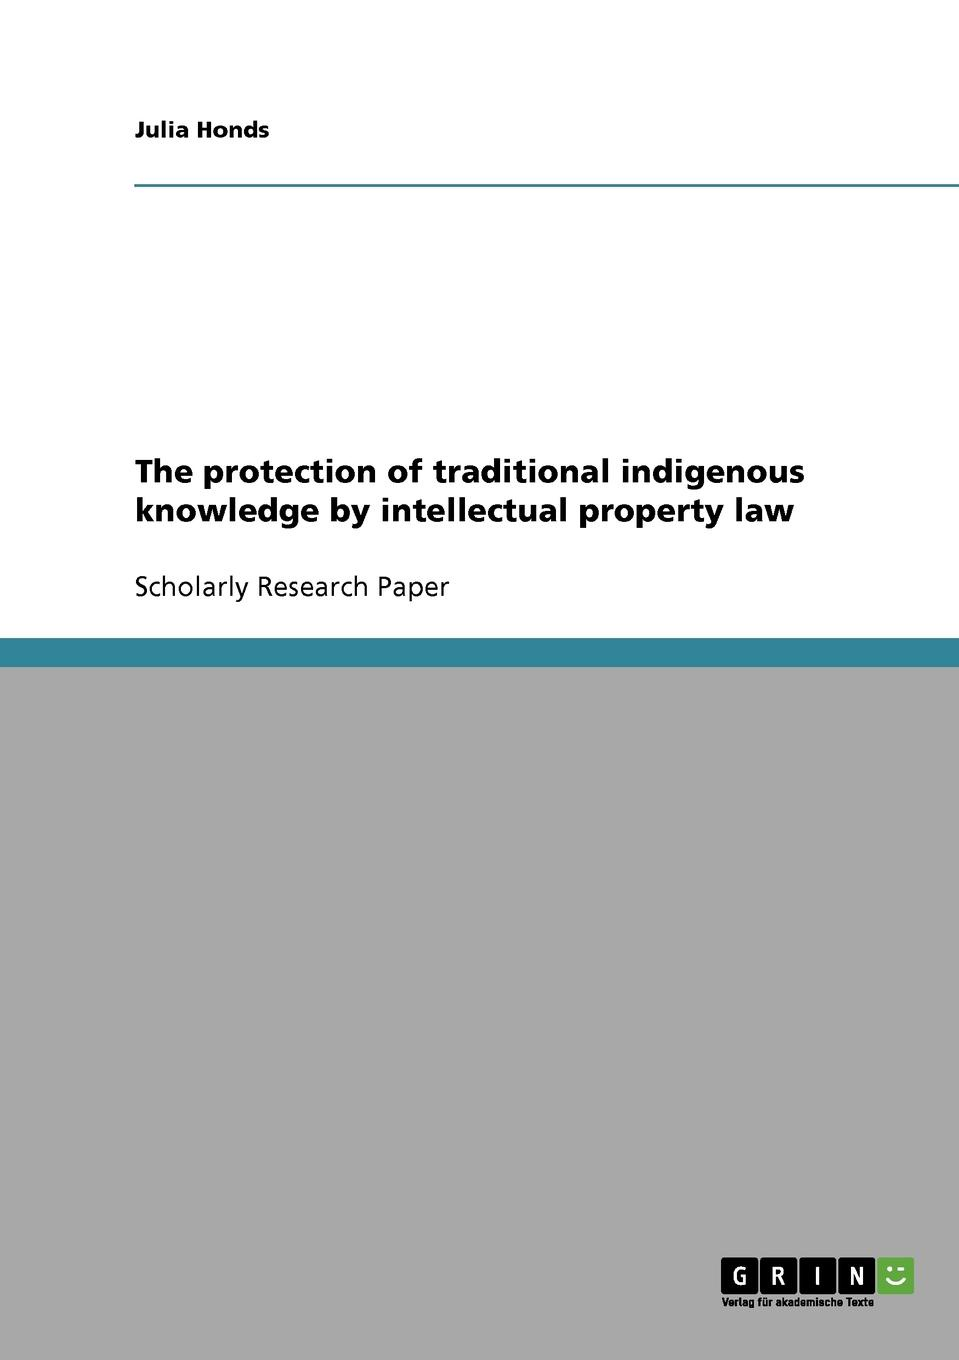 Julia Honds The protection of traditional indigenous knowledge by intellectual property law patrick sullivan h edison in the boardroom revisited how leading companies realize value from their intellectual property